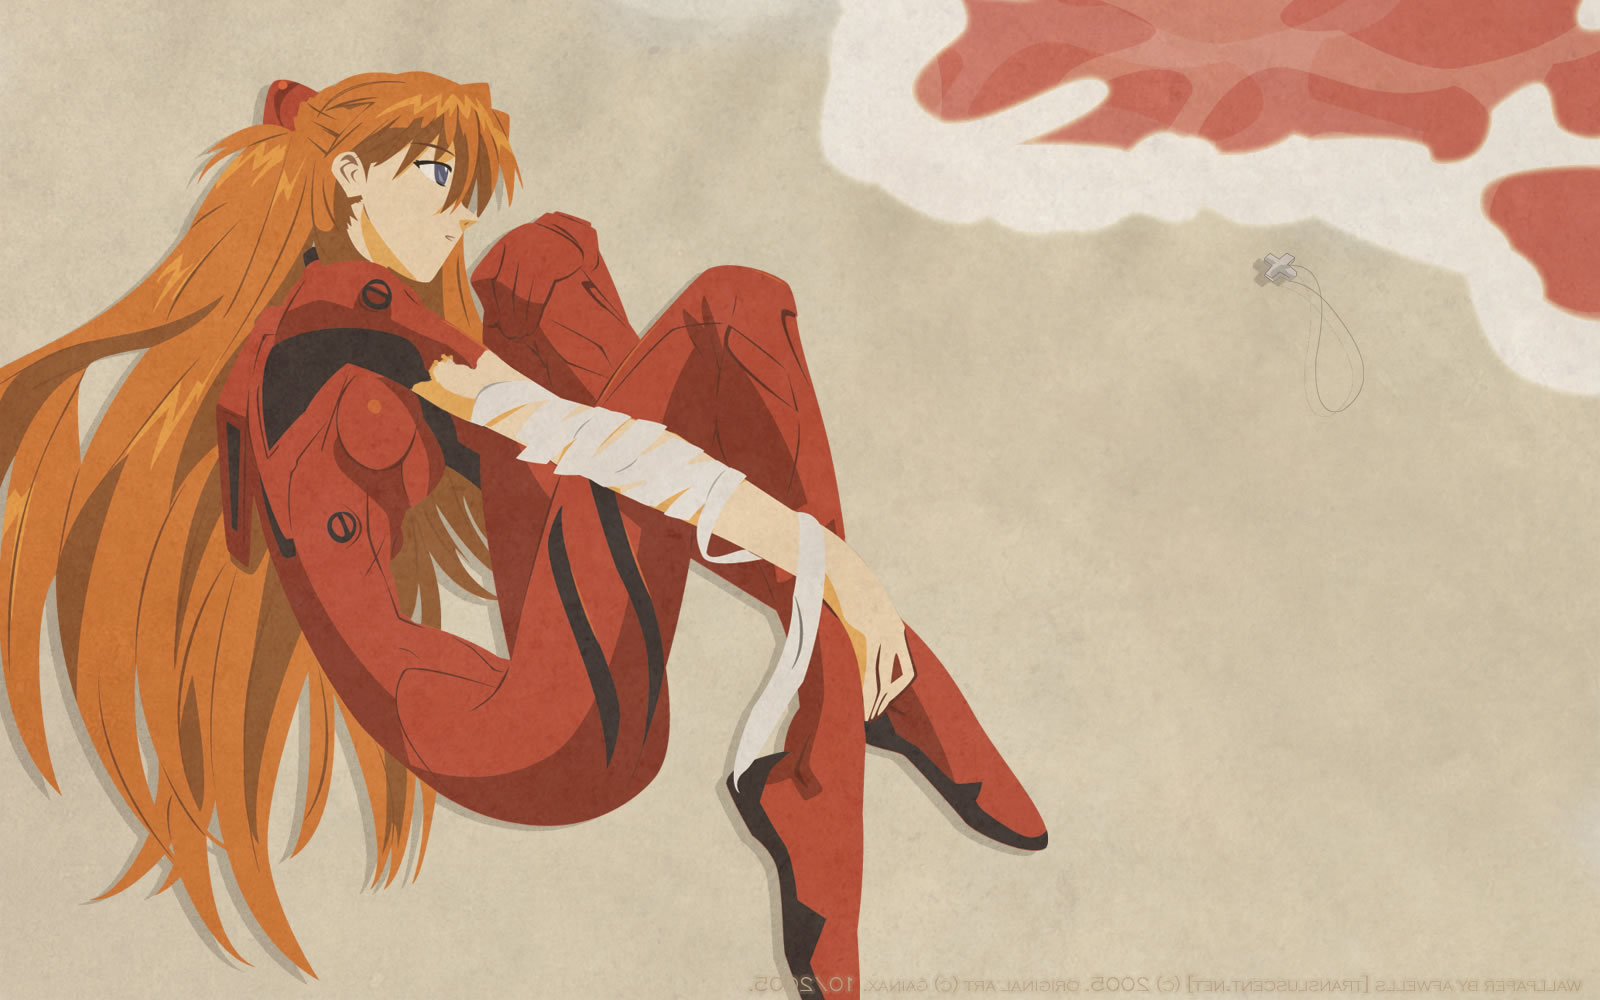 Asuka Curled Up In Foetal Position